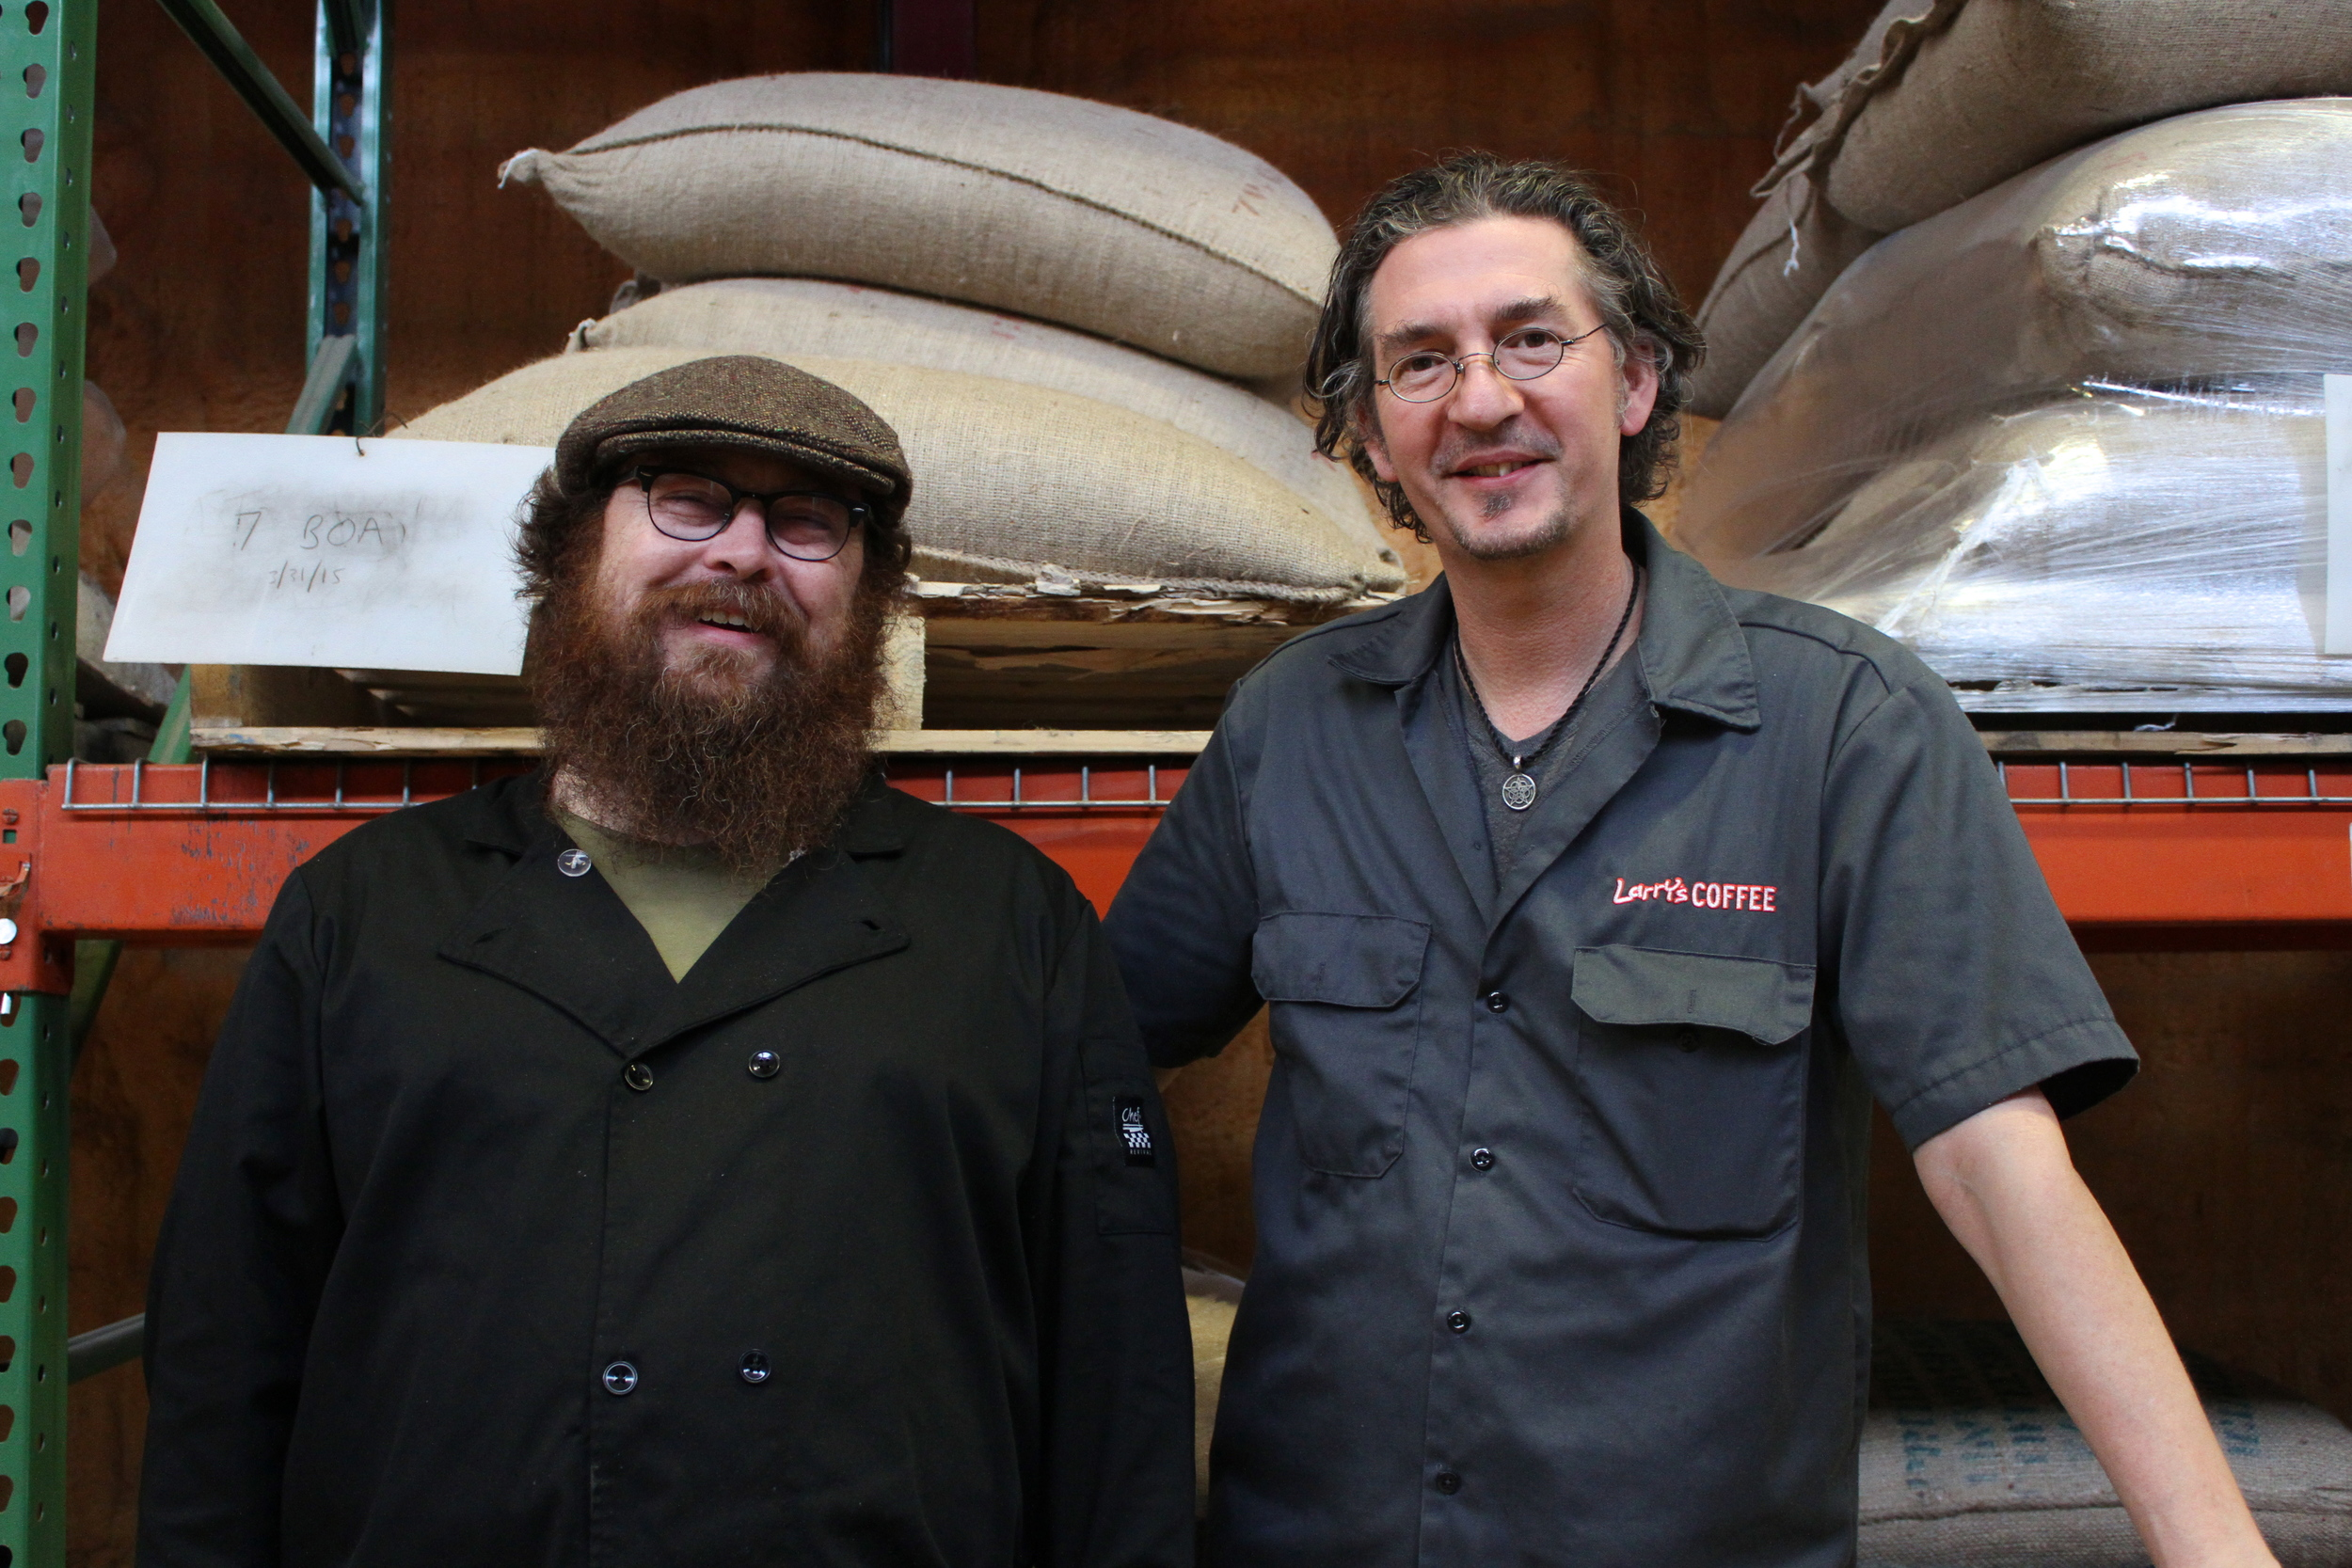 Nathan Phillips (left) and Larry Larson of Larry's Coffee